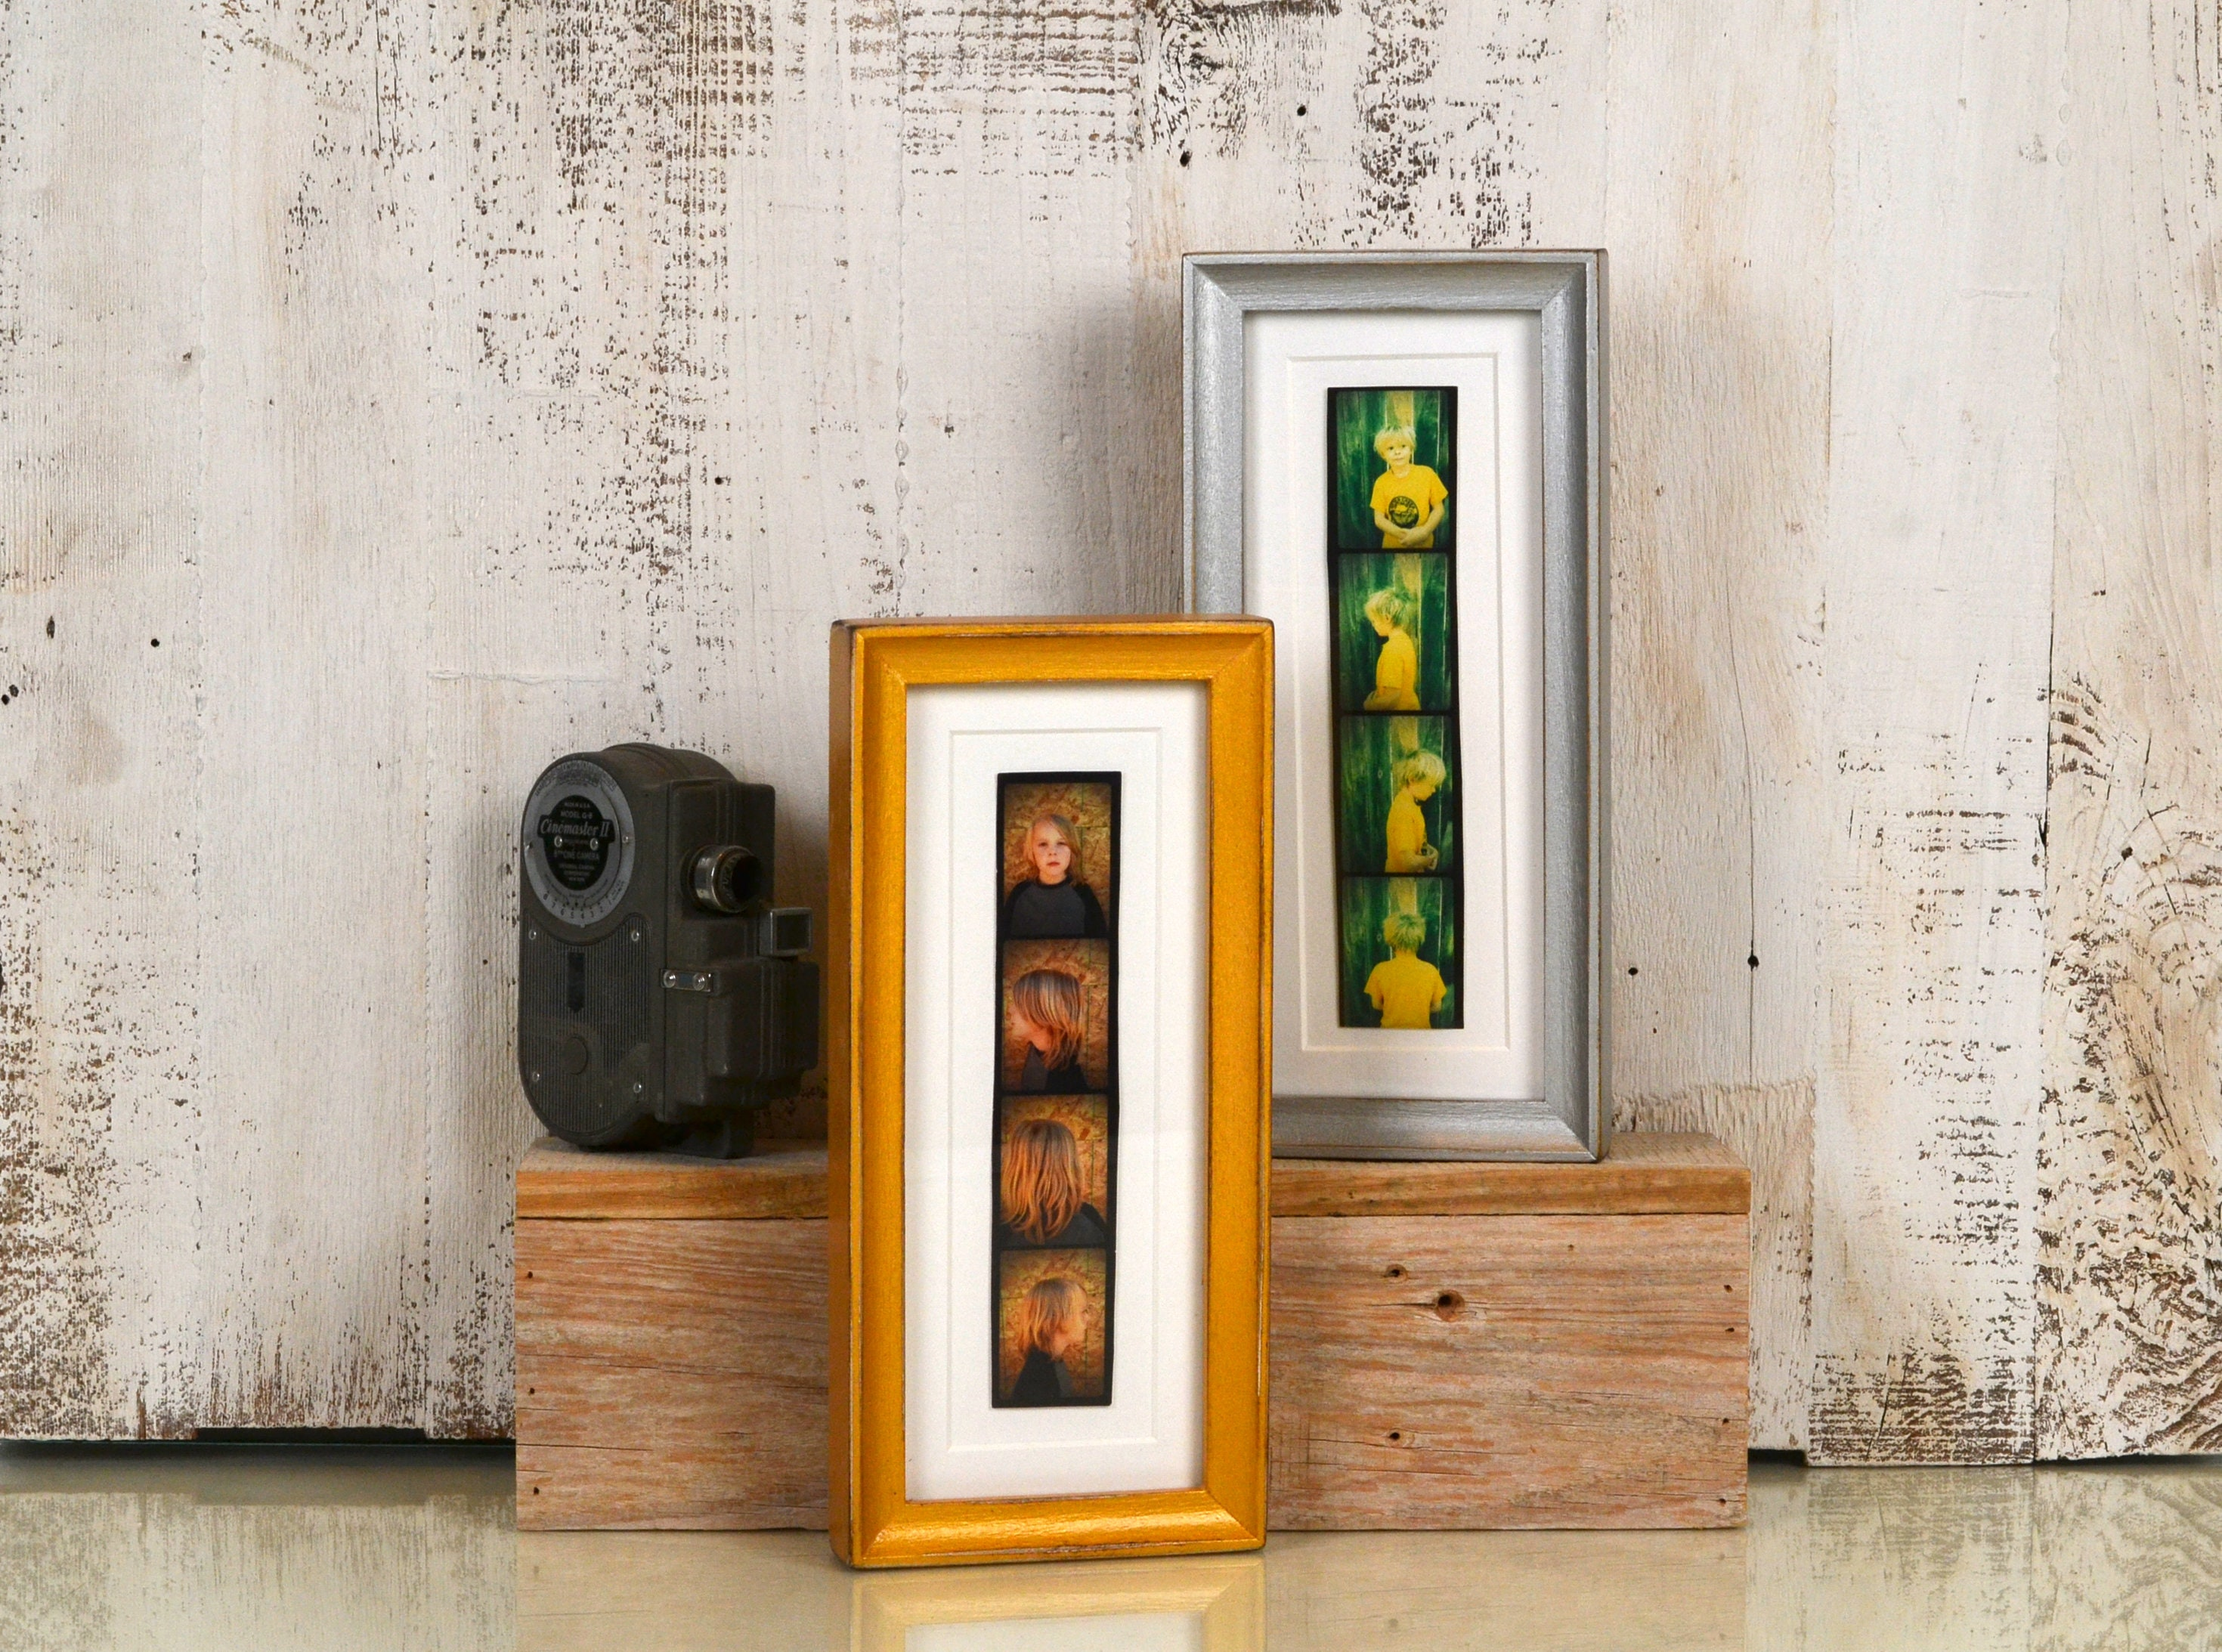 4x10 Picture Frame For Photo Booth Strip In Foxy Cove Style And